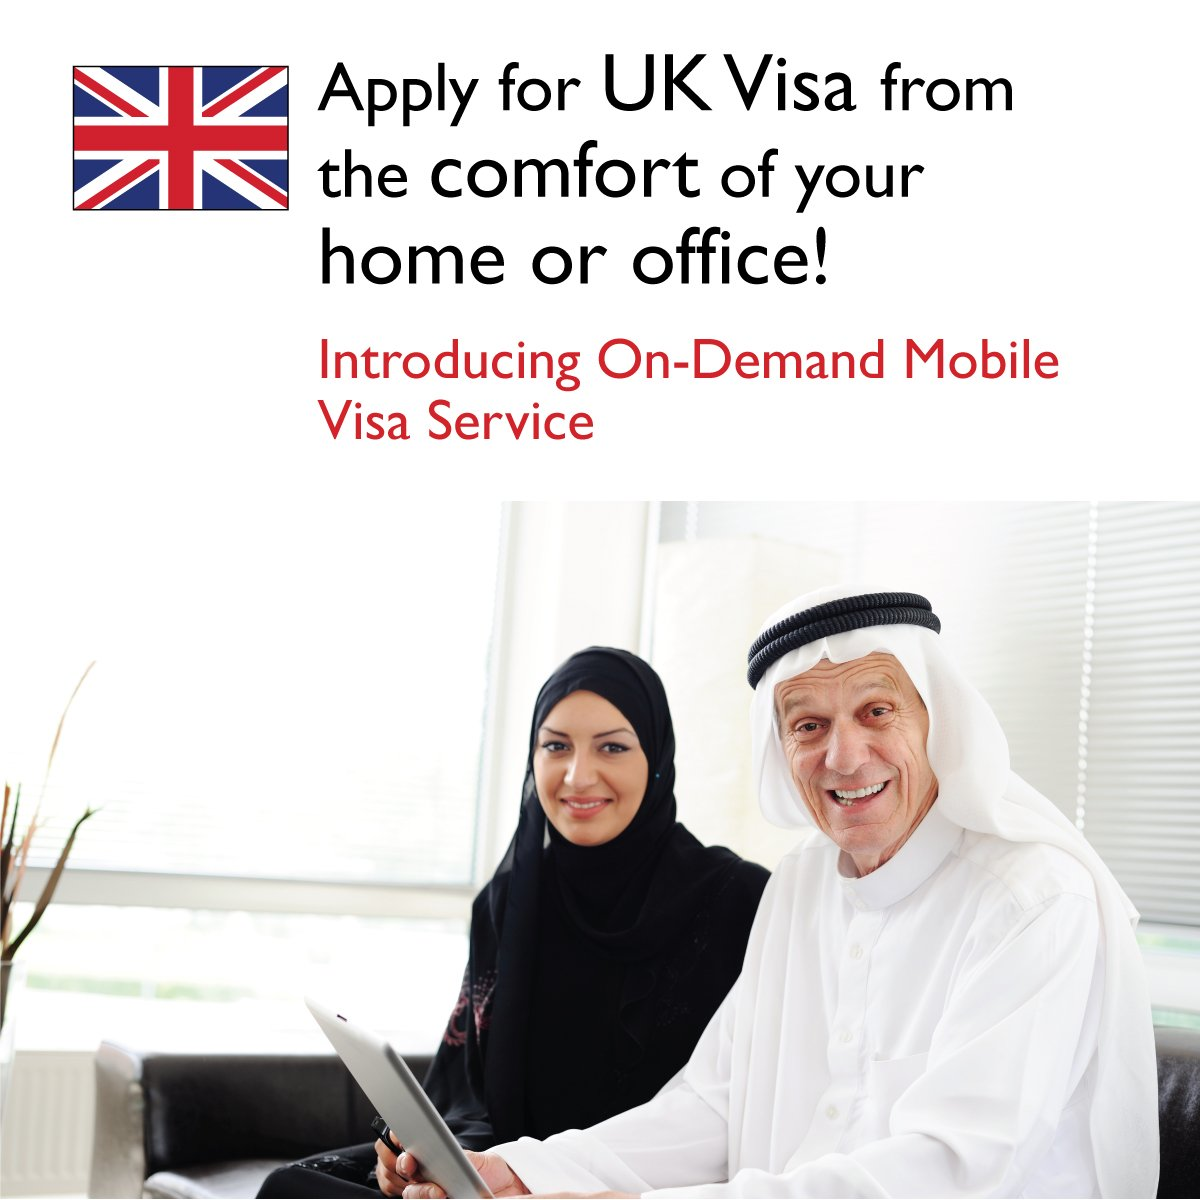 Vfs Global On Twitter Residents In Bahrain Can Experience Unparalleled Ease And Convenience While Applying For Their Uk Visa At A Location And Time More Convenient To Them To Book An Appointment